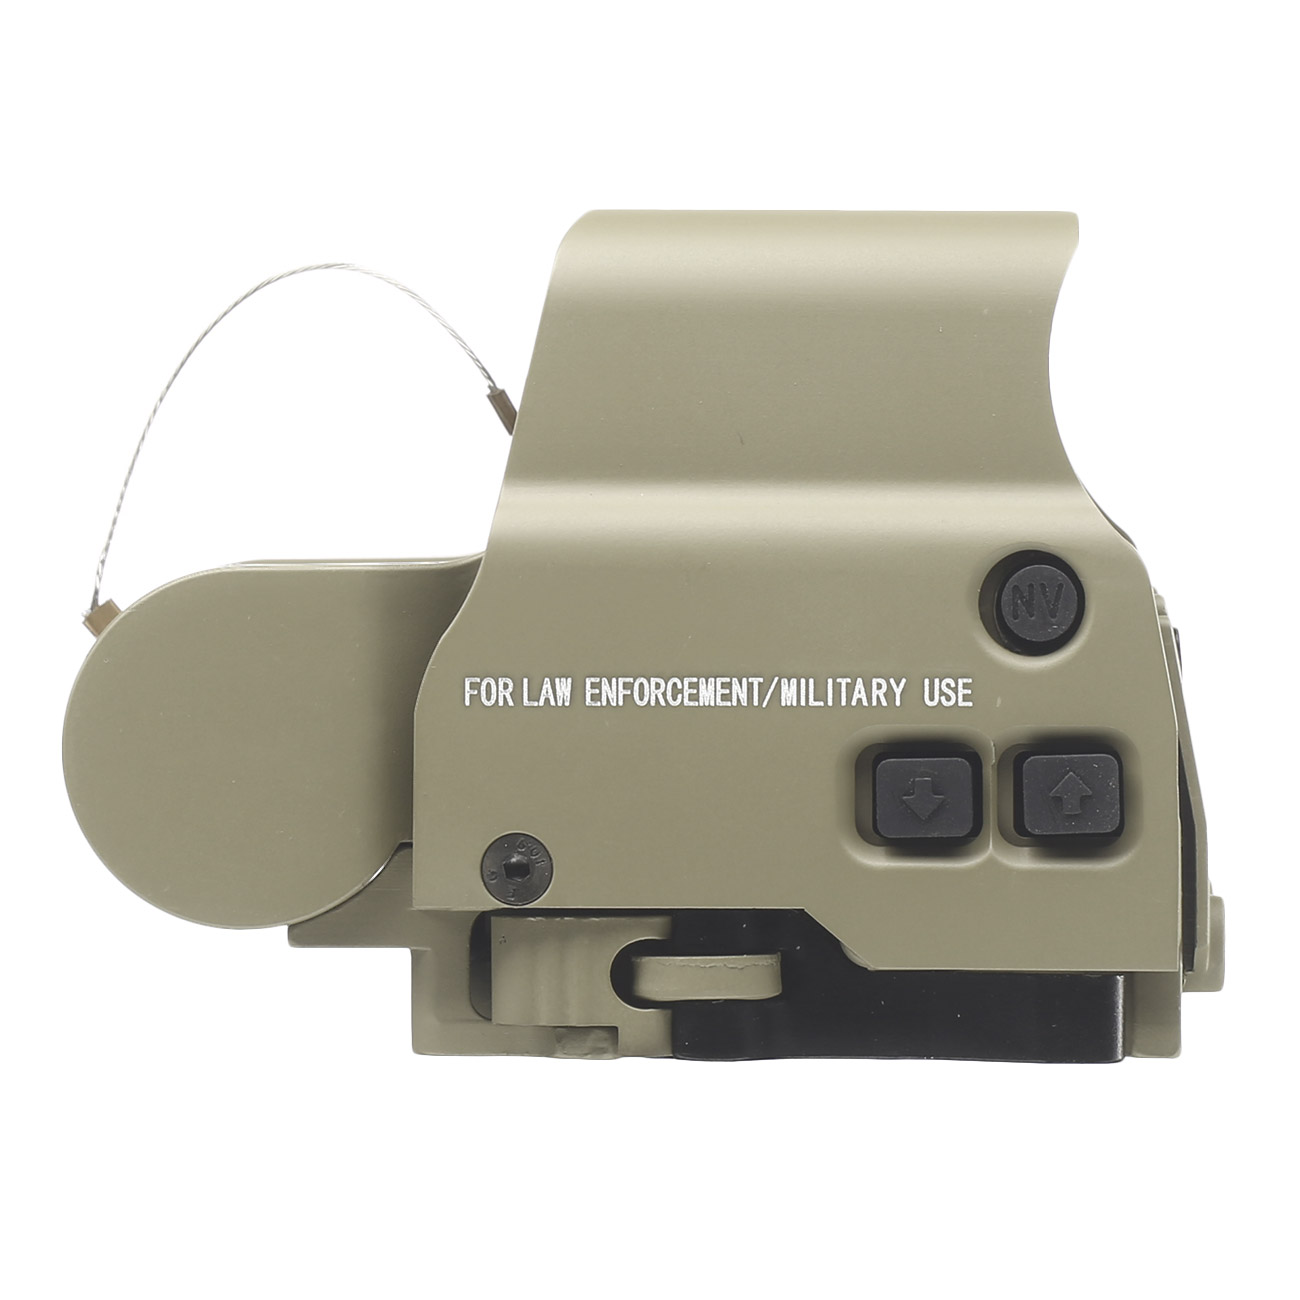 Aim-O X2 Type Holosight rot / grün mit QD Mount tan AO 3056-DE 3